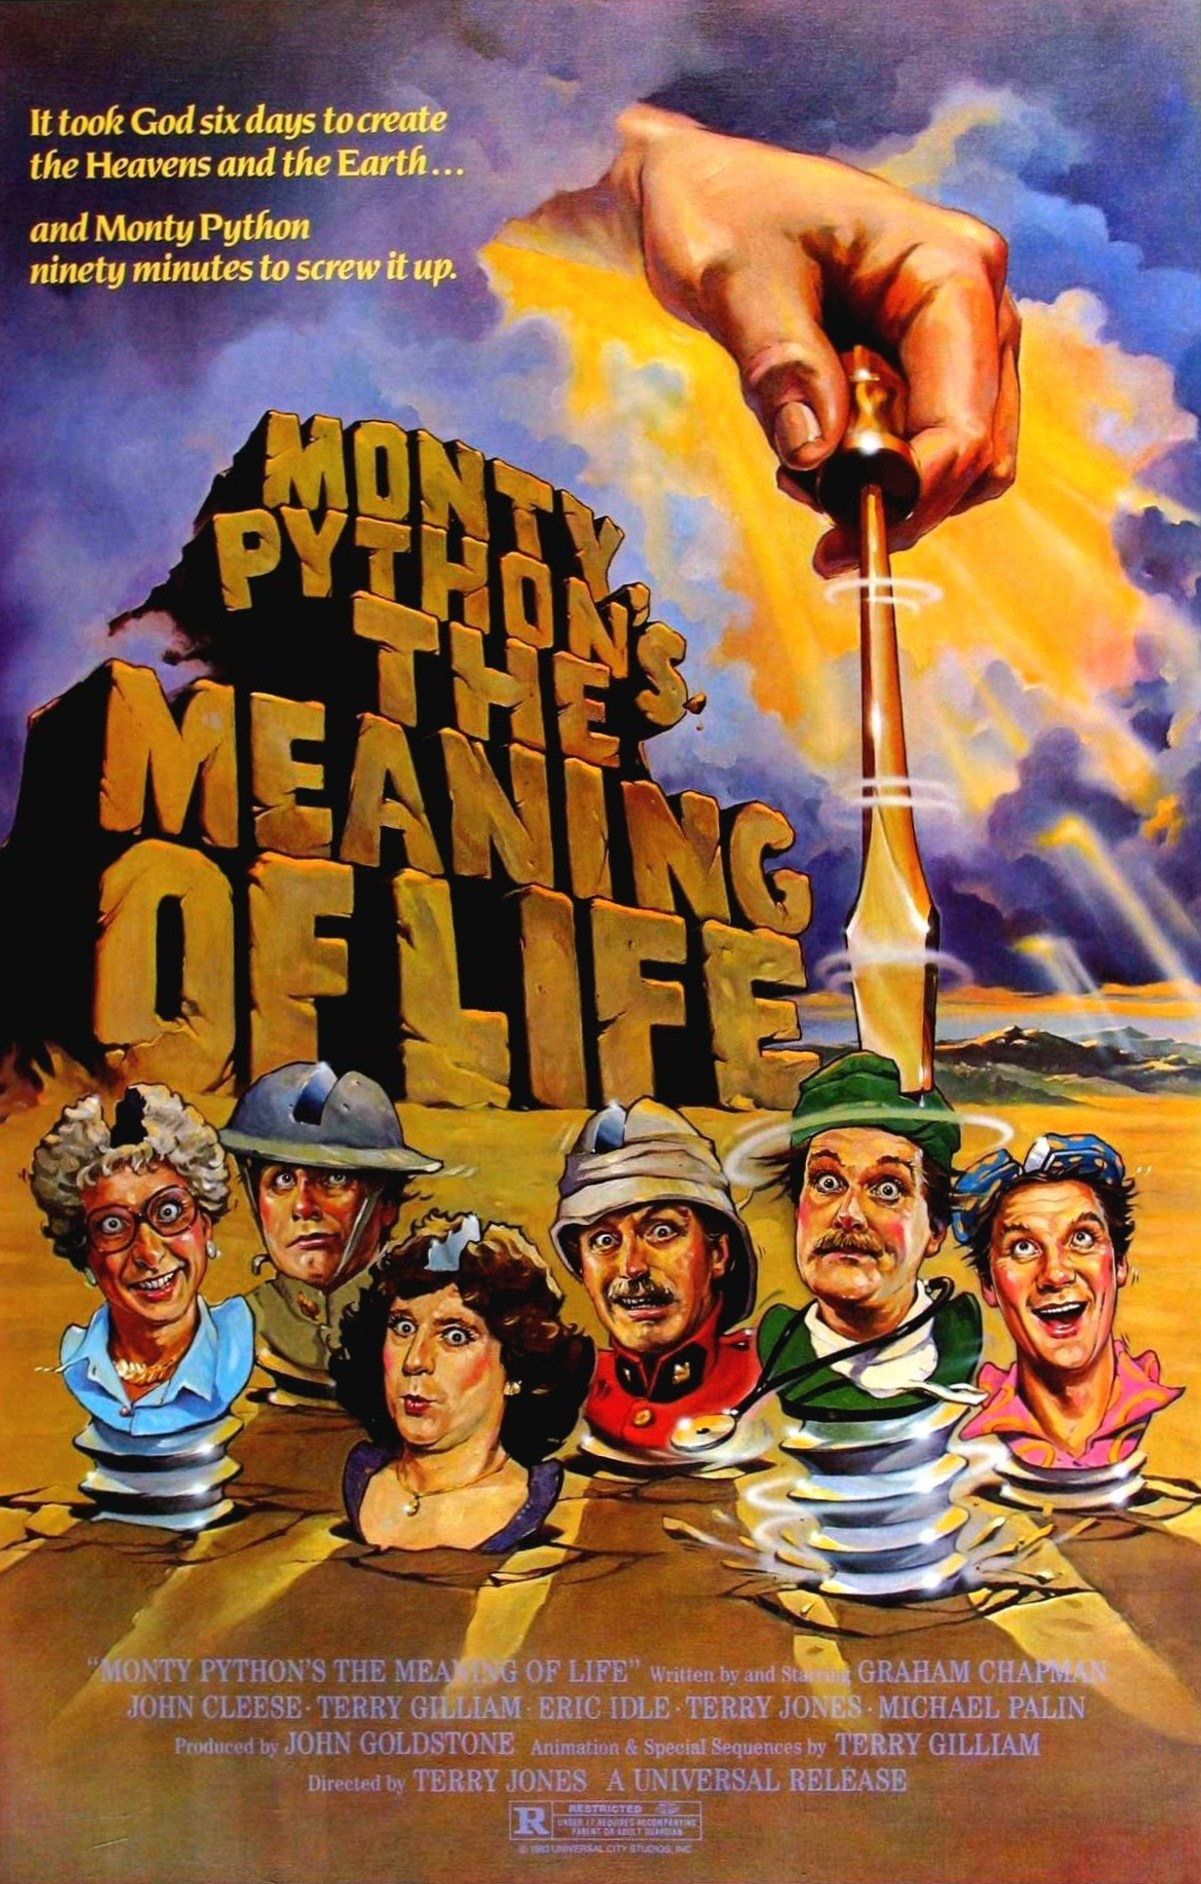 https://lh6.googleusercontent.com/-E6YMRq-tH4Y/TX-HzcWRu8I/AAAAAAAAAs0/WGTrWoRYnCs/s0/poster_-_monty_python_s_the_meaning_of_life1.jpg